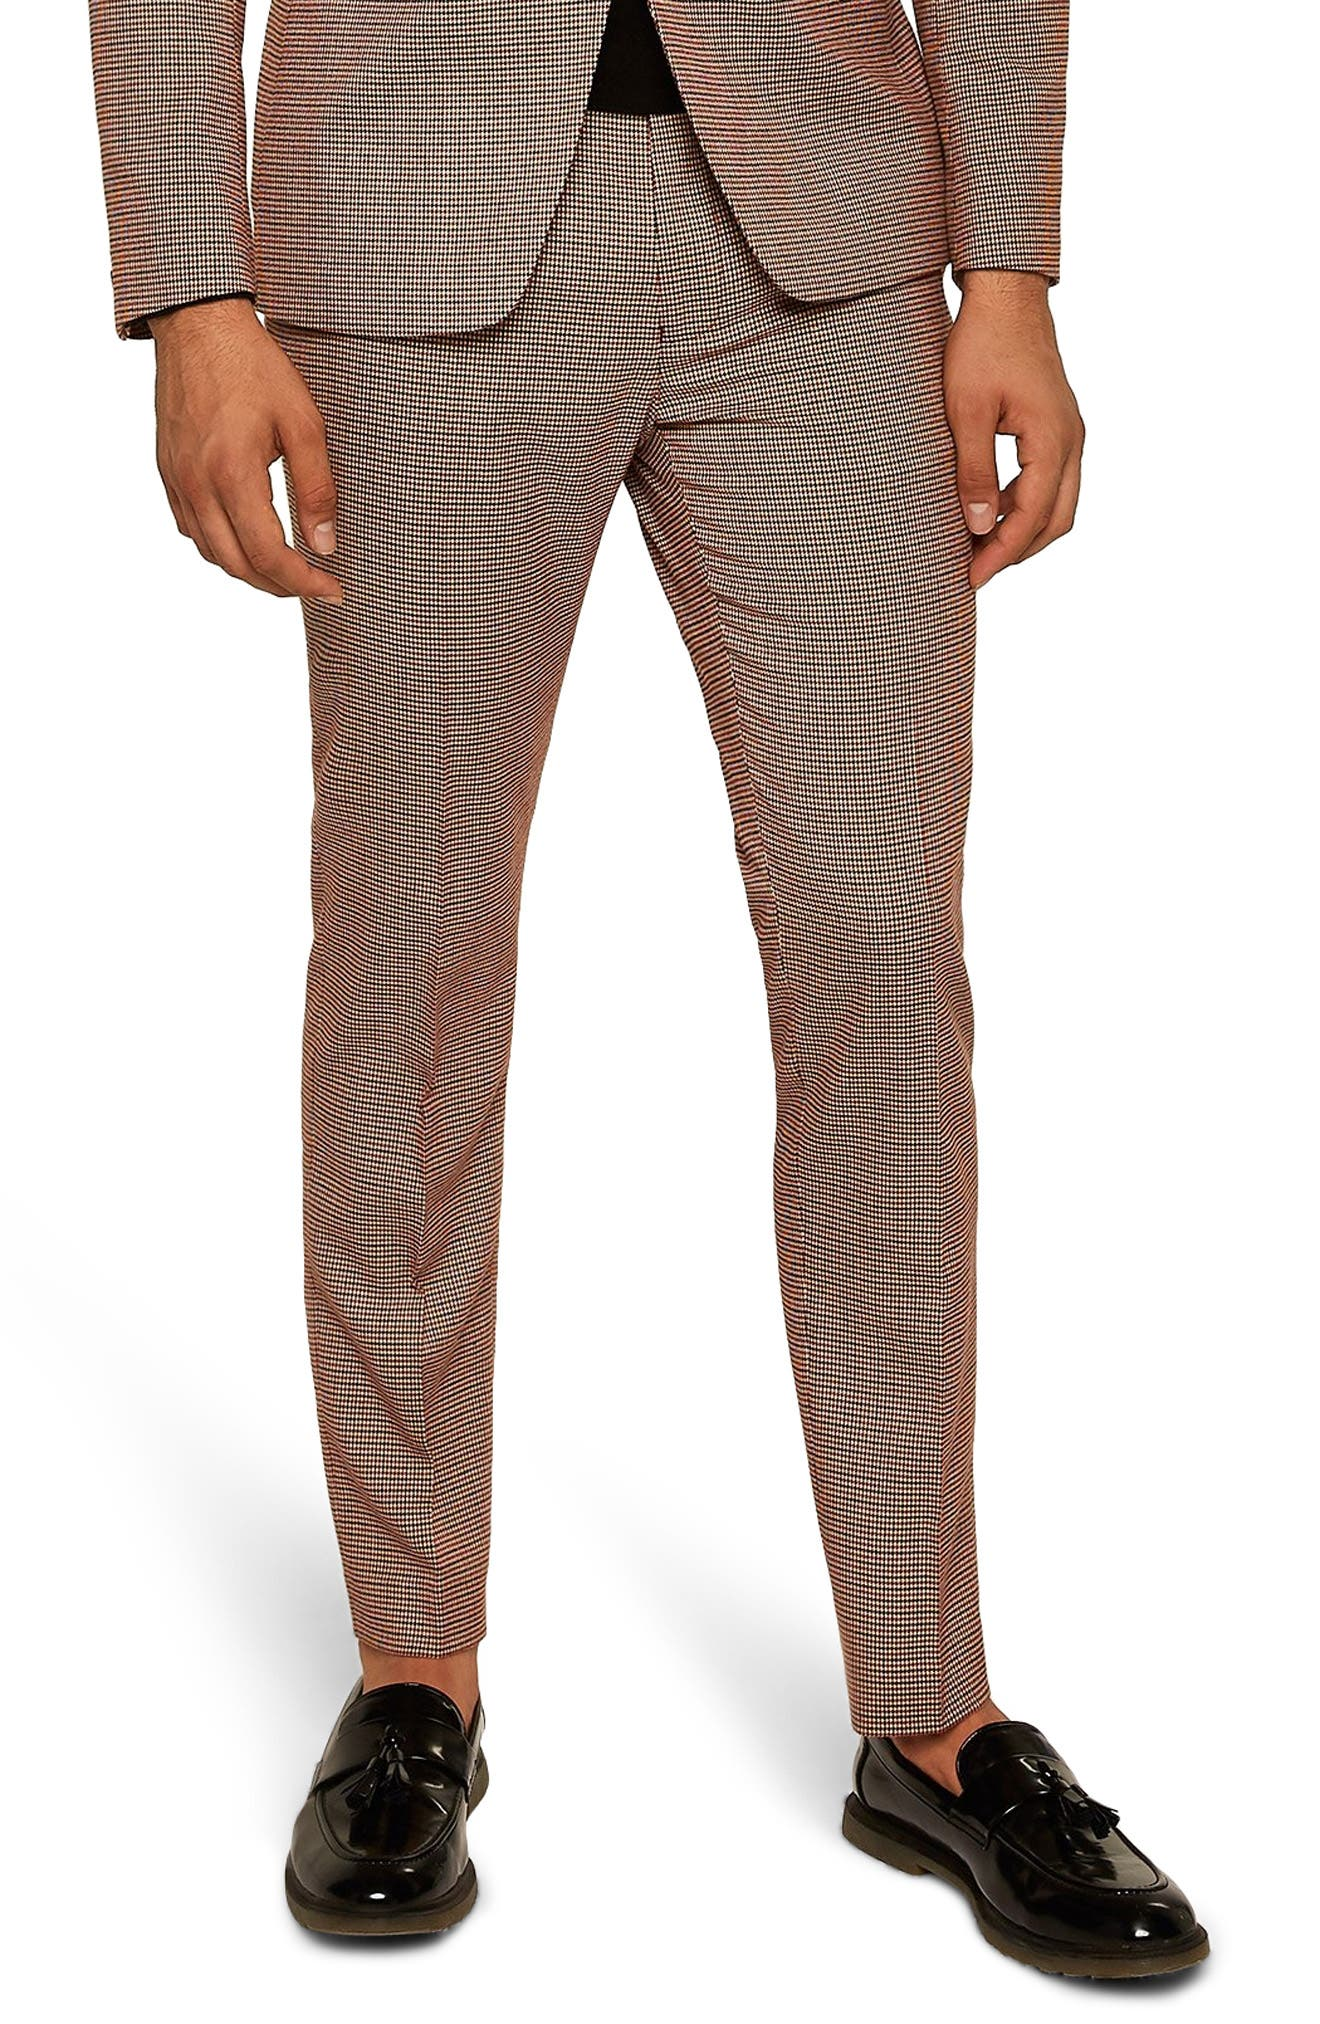 Houndstooth Skinny Fit Trousers,                             Main thumbnail 1, color,                             STONE